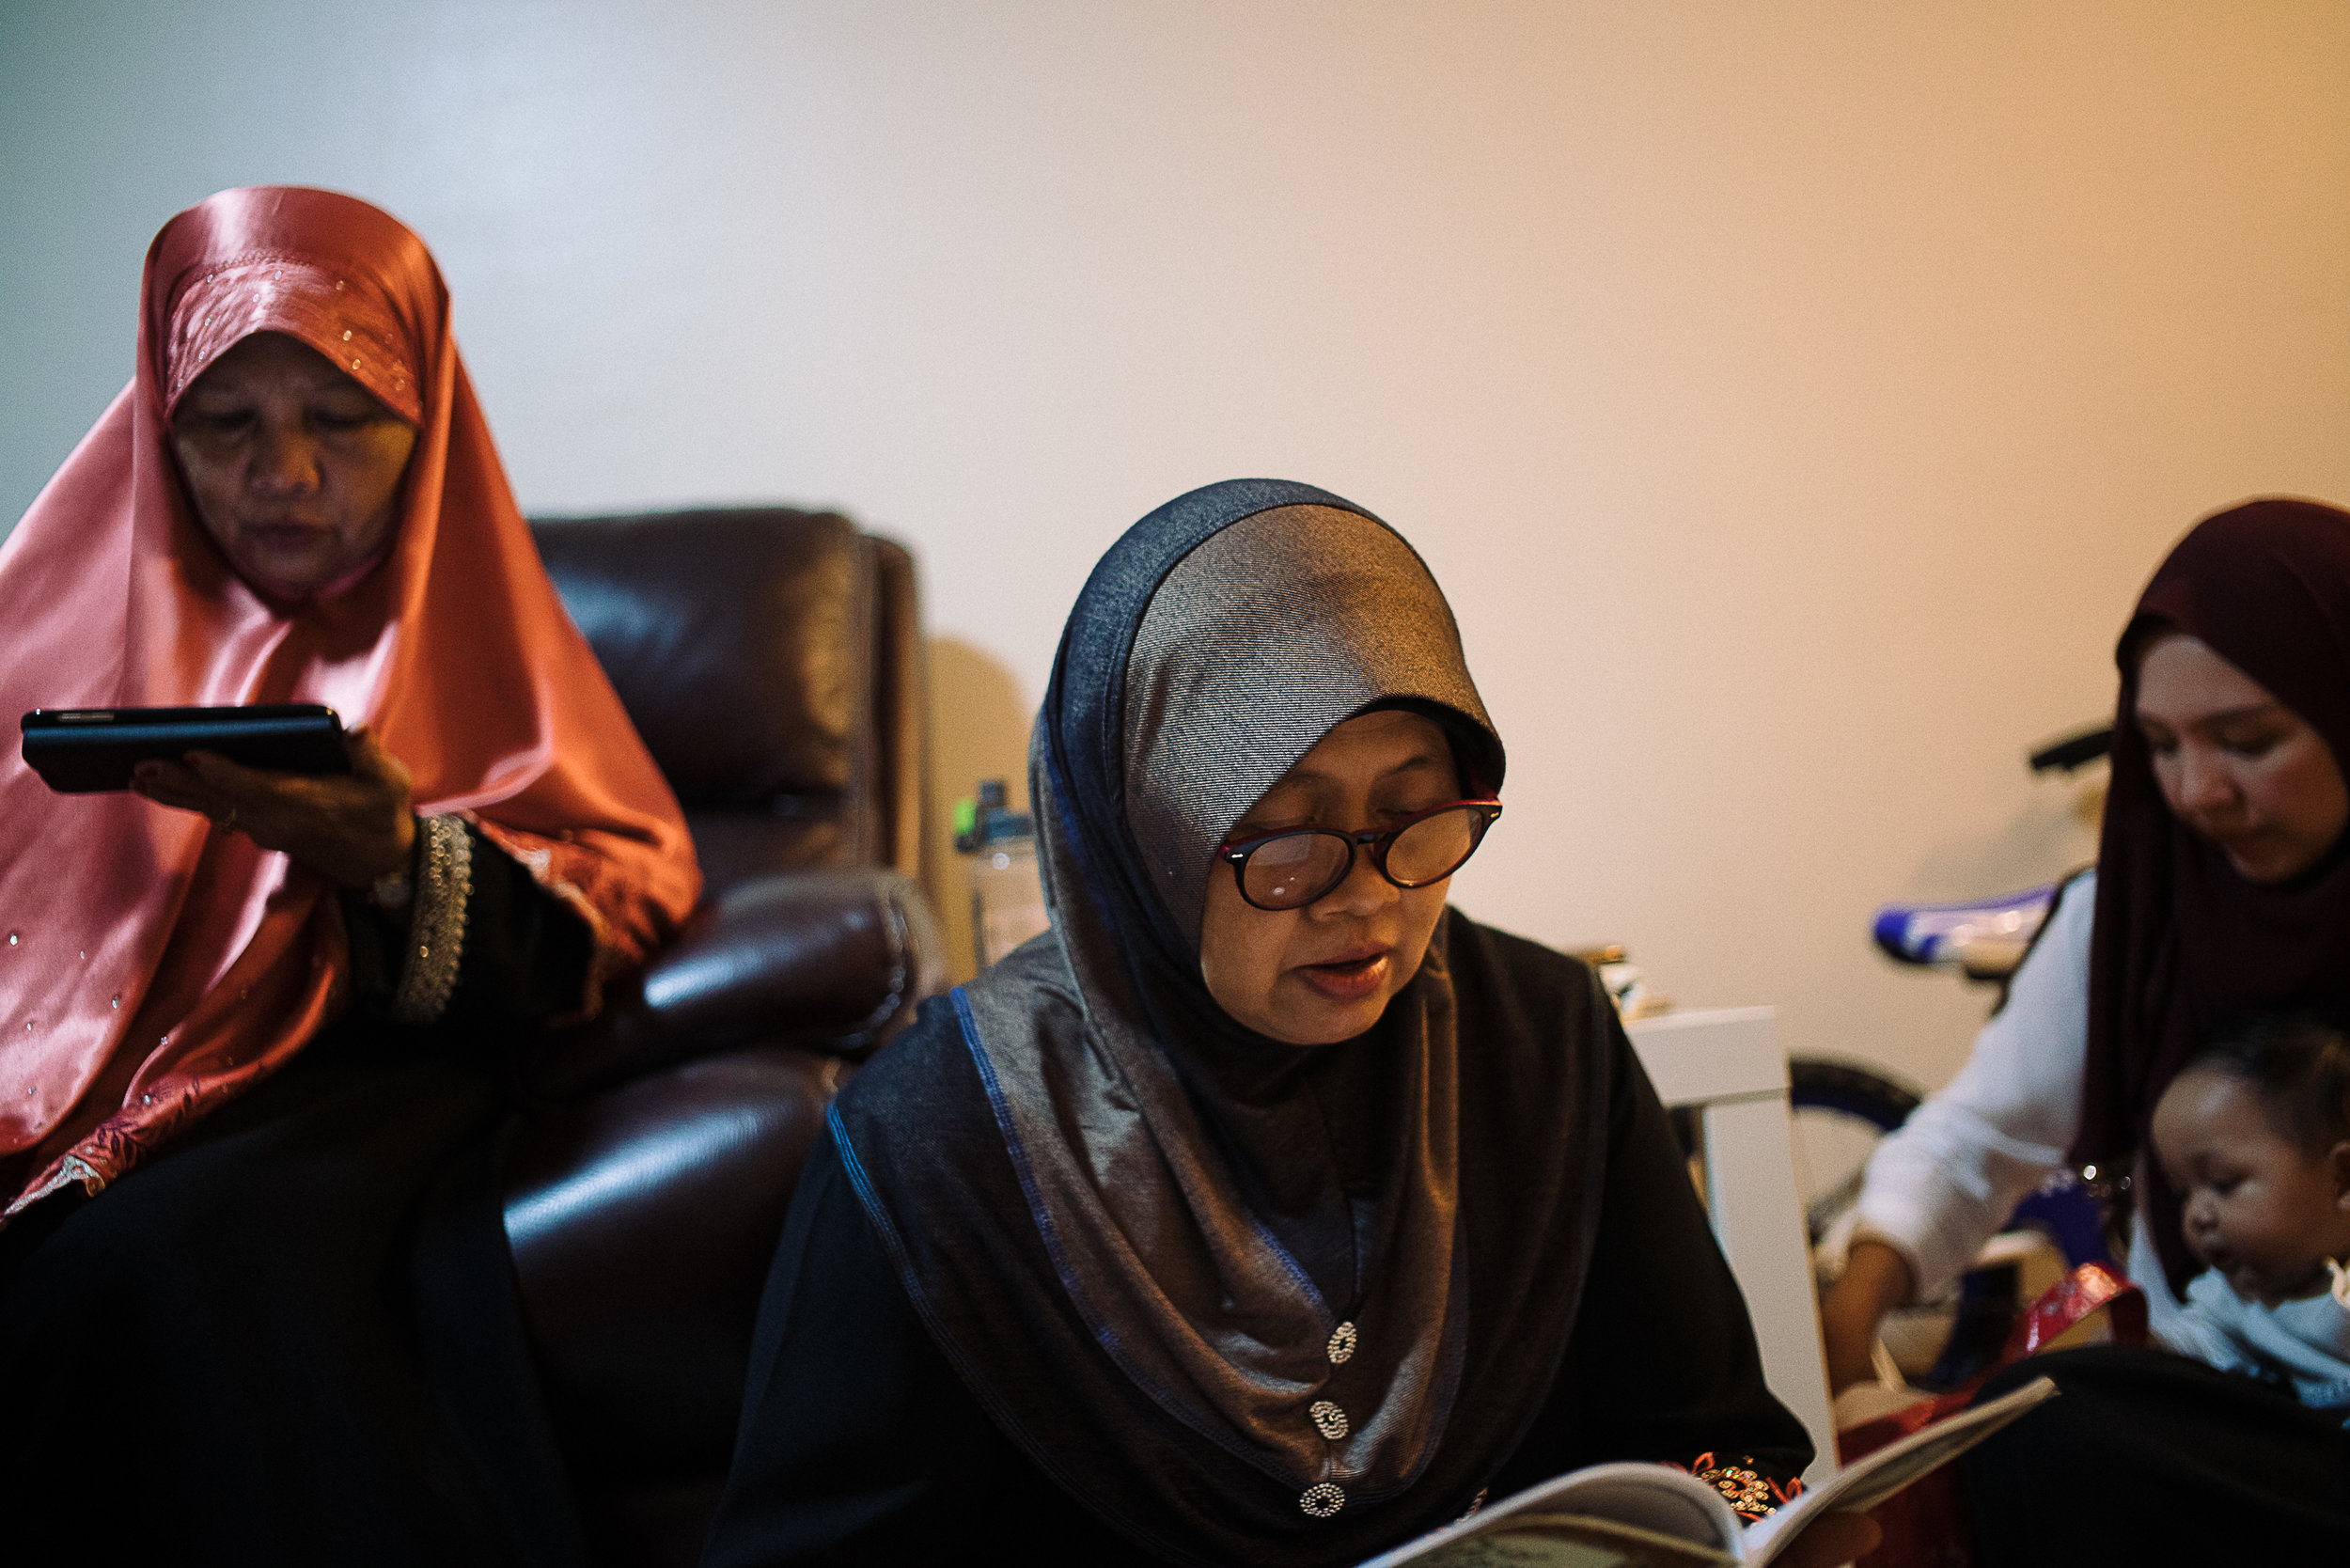 Hidayah's mother (L), mother-in-law (M), and sister-in-law (R) reciting the Yaseen, or the heart of the Qur'an, and praying it for Hana's well-being.